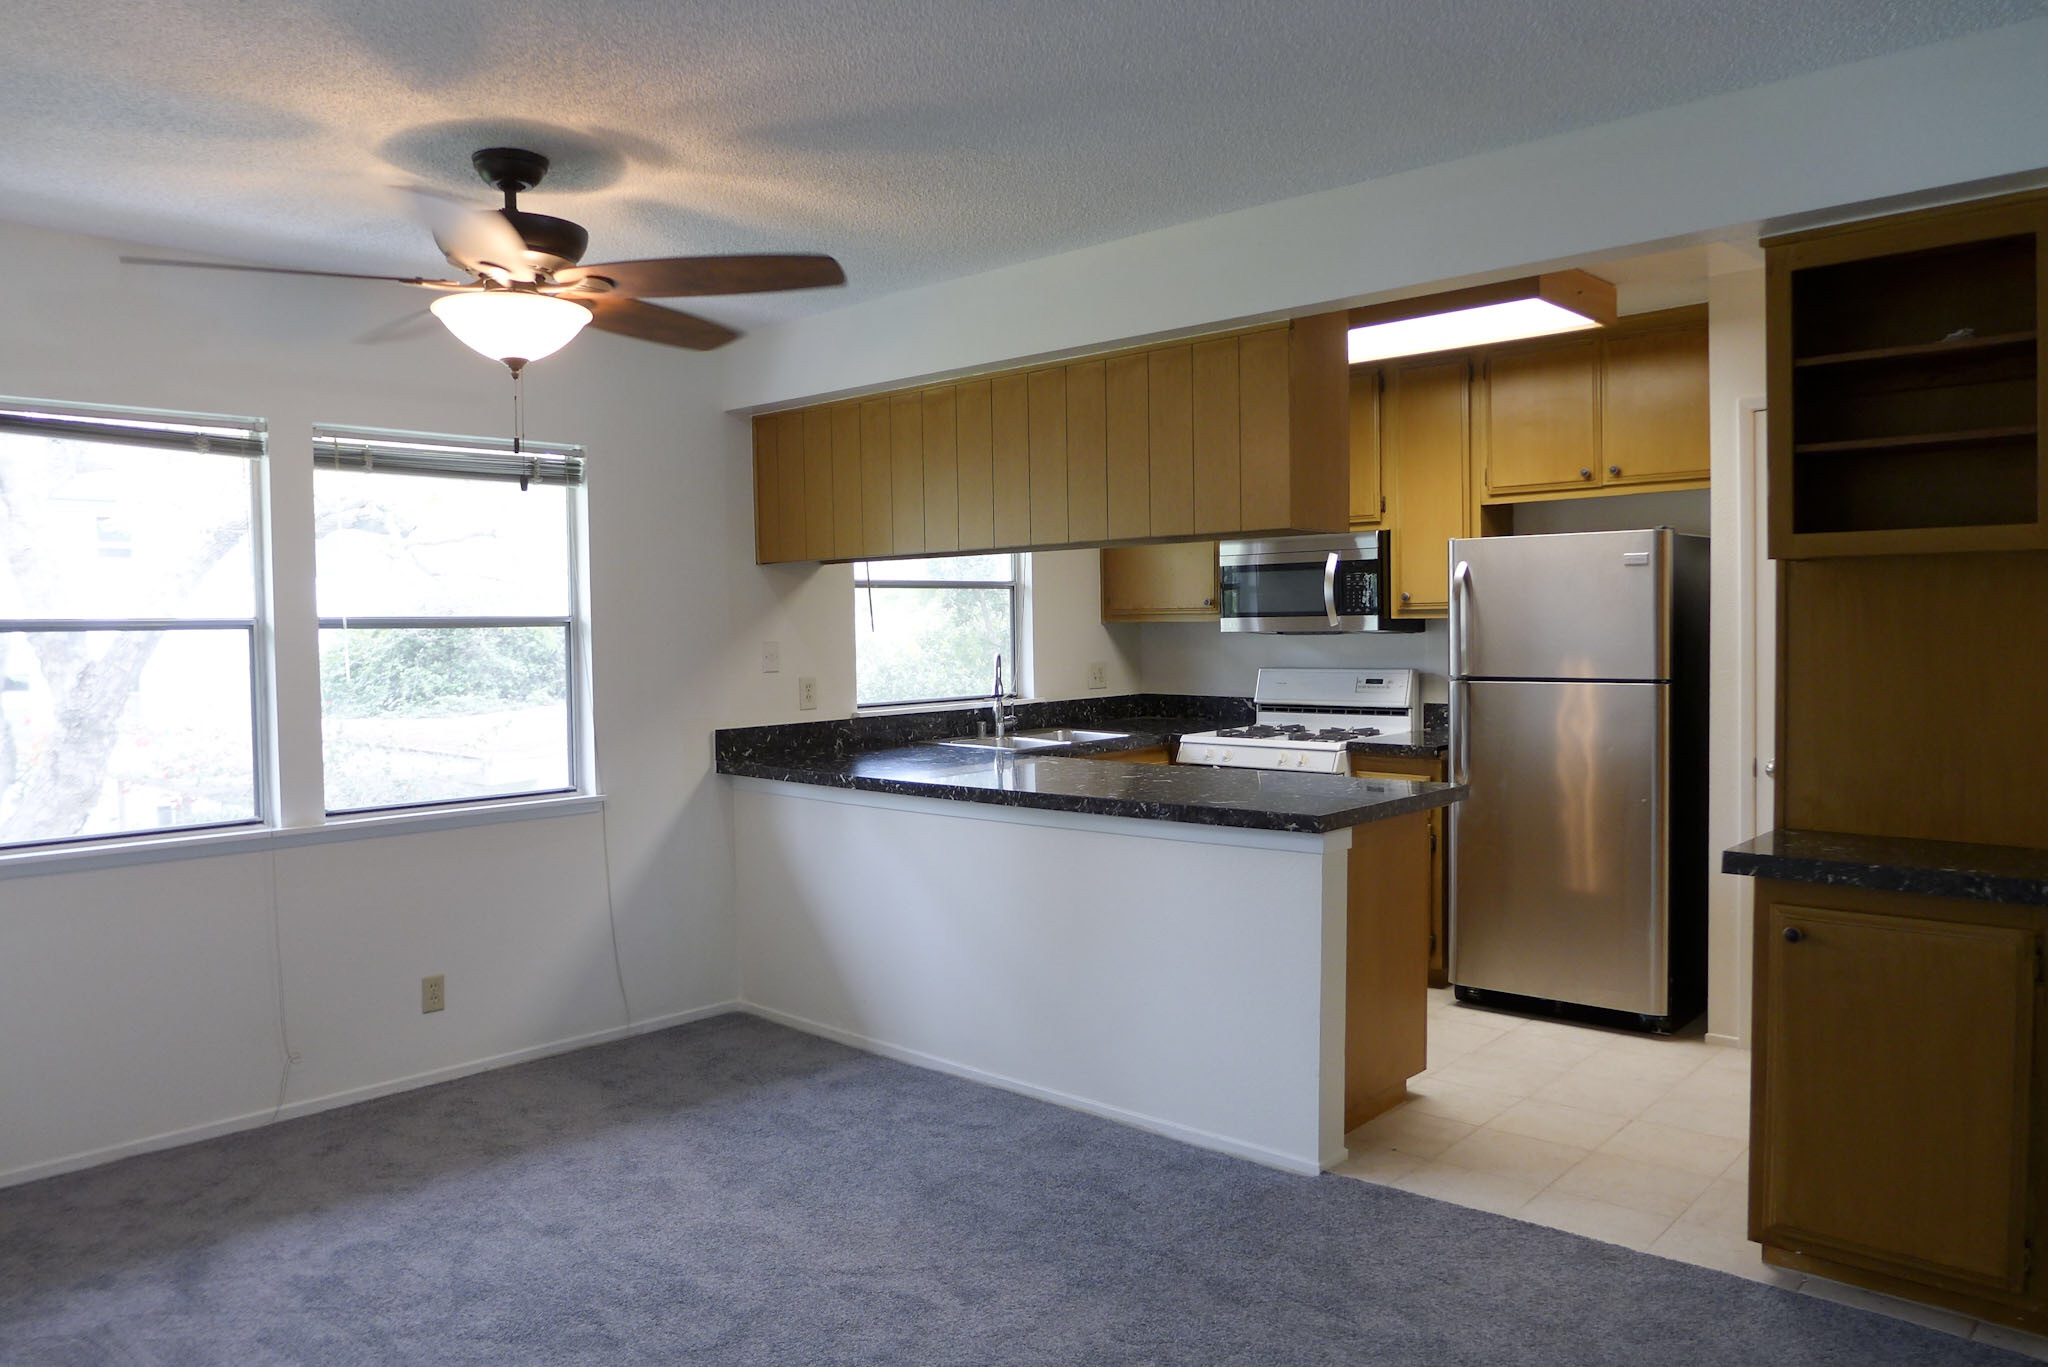 Wow! GATED -Super Spacious 2bed-Renovated Kitchen- W/D - CLOSE to everything!